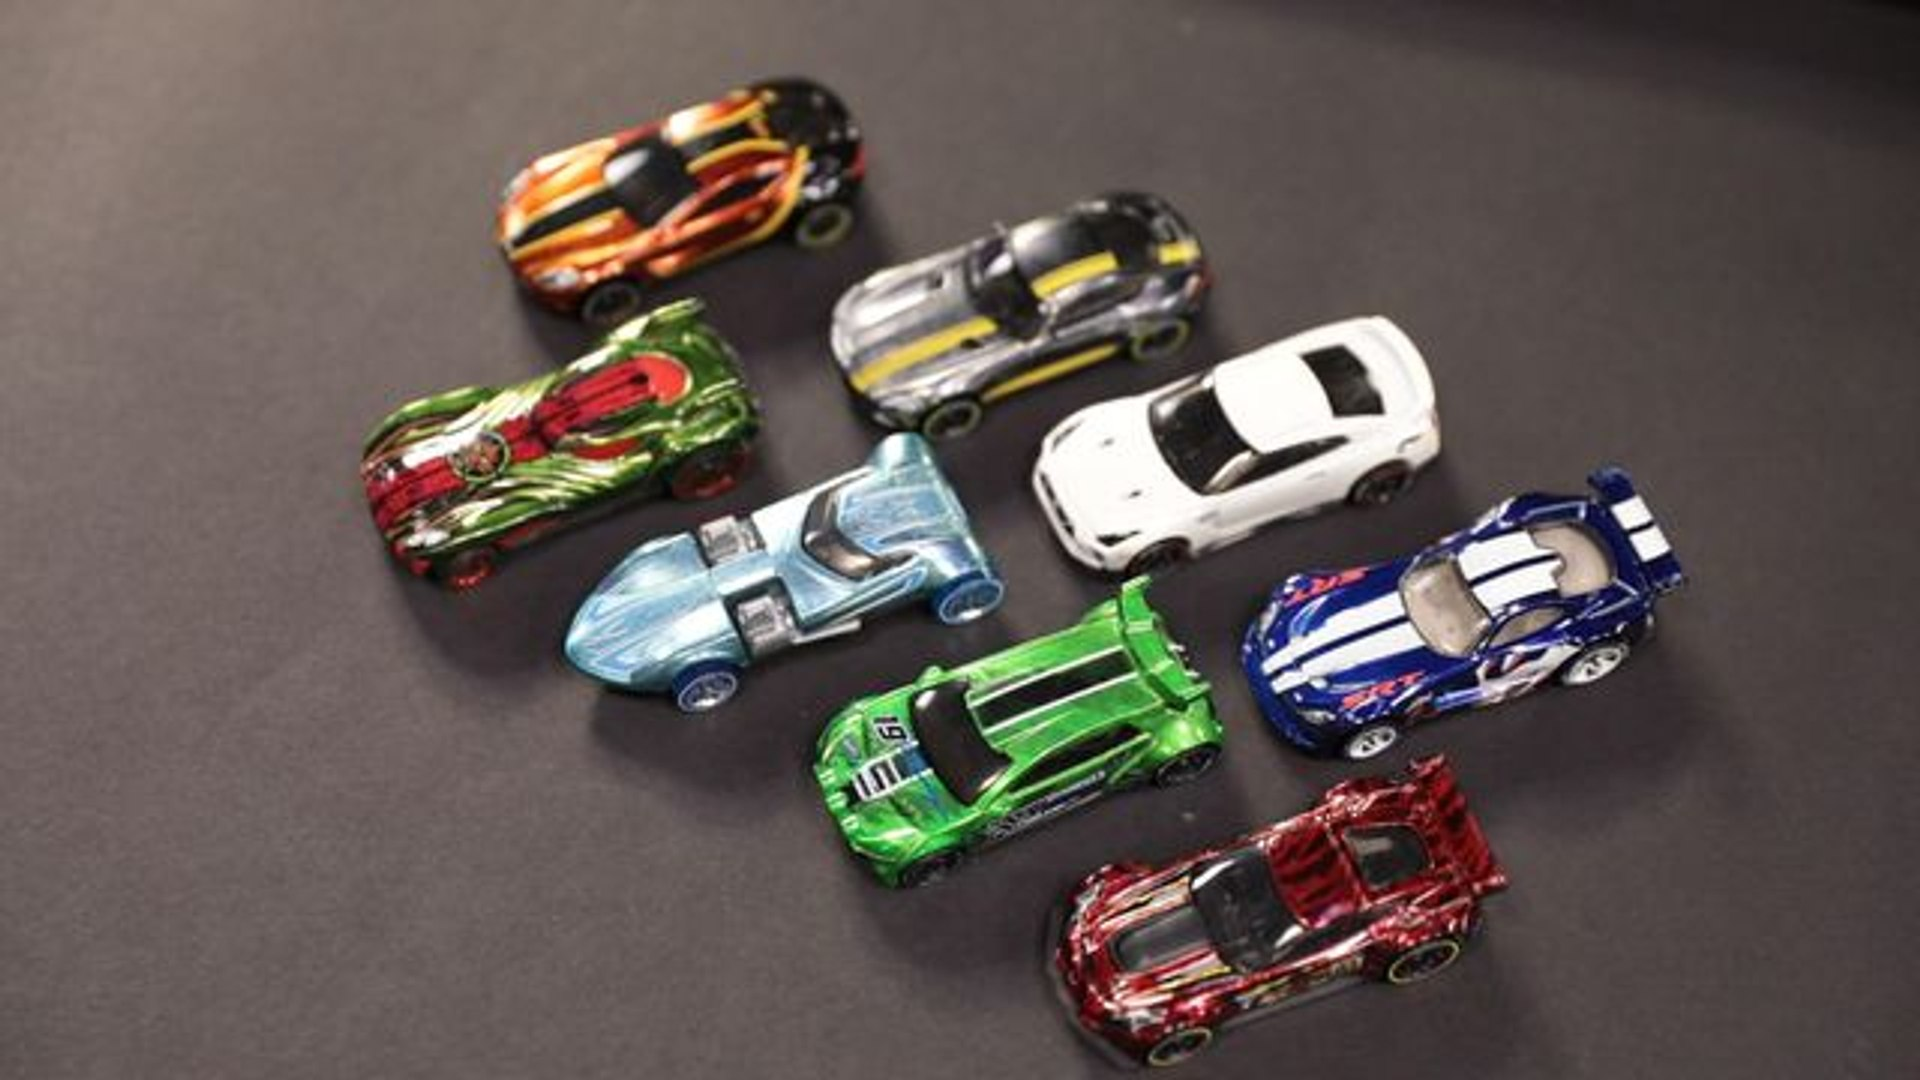 Test driving the new Hot Wheels ID smart cars